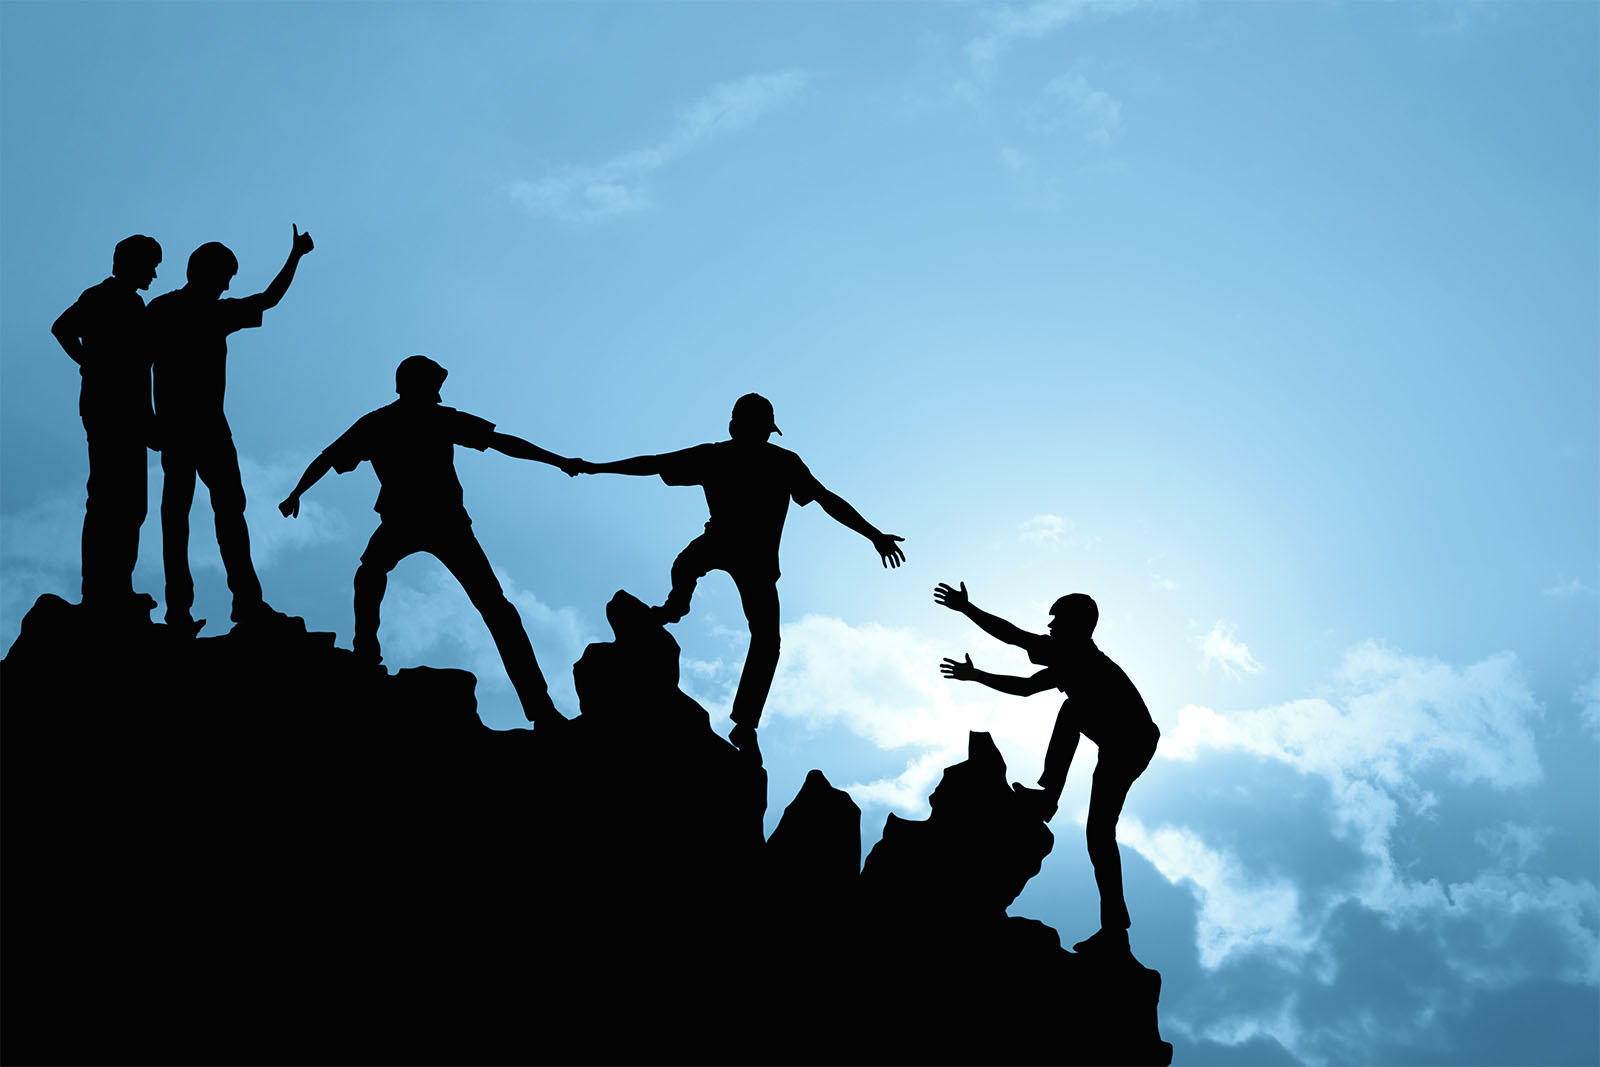 A team of 5 people helping each other climb a mountain.